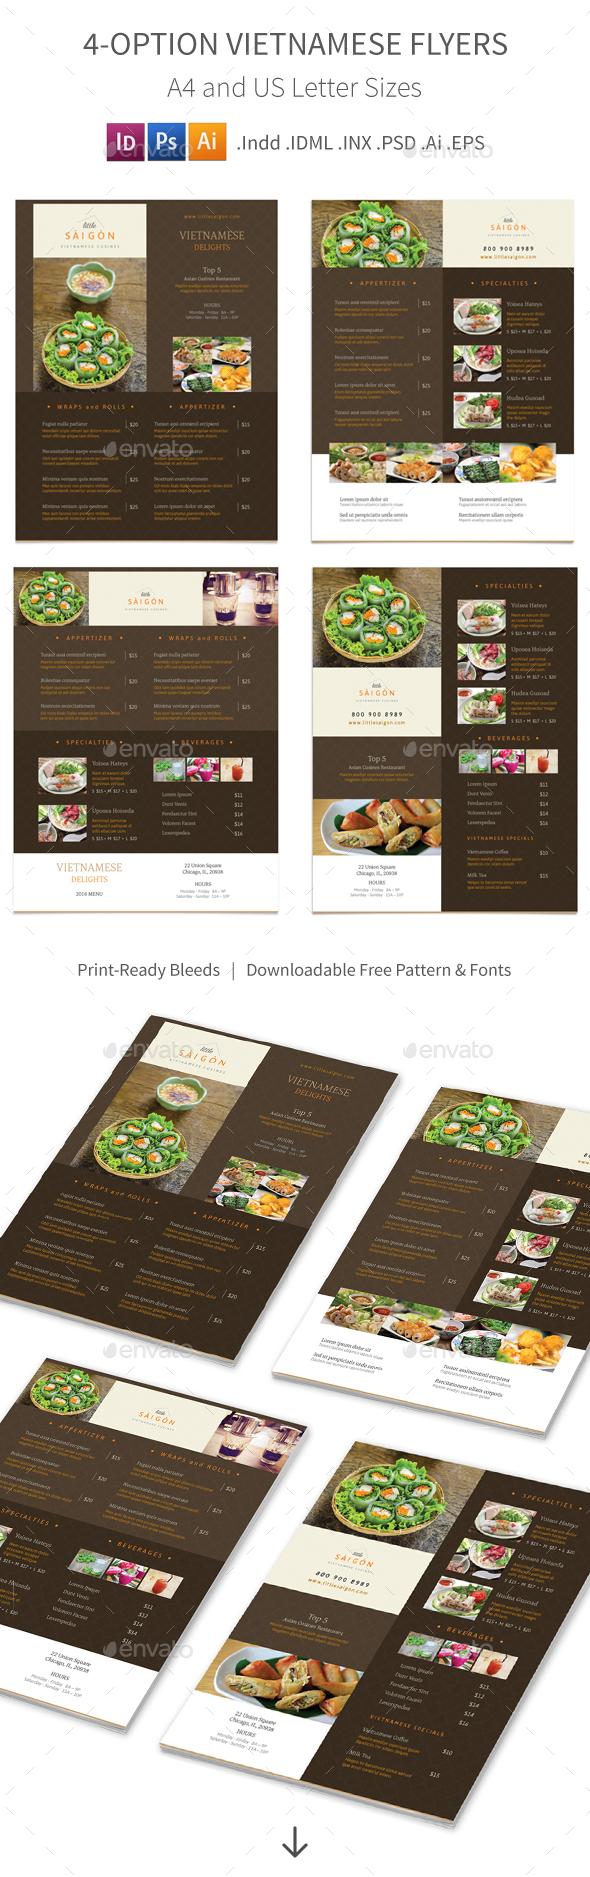 Vietnamese Restaurant Menu Flyers 2 – 4 Options - Food Menus Print Templates